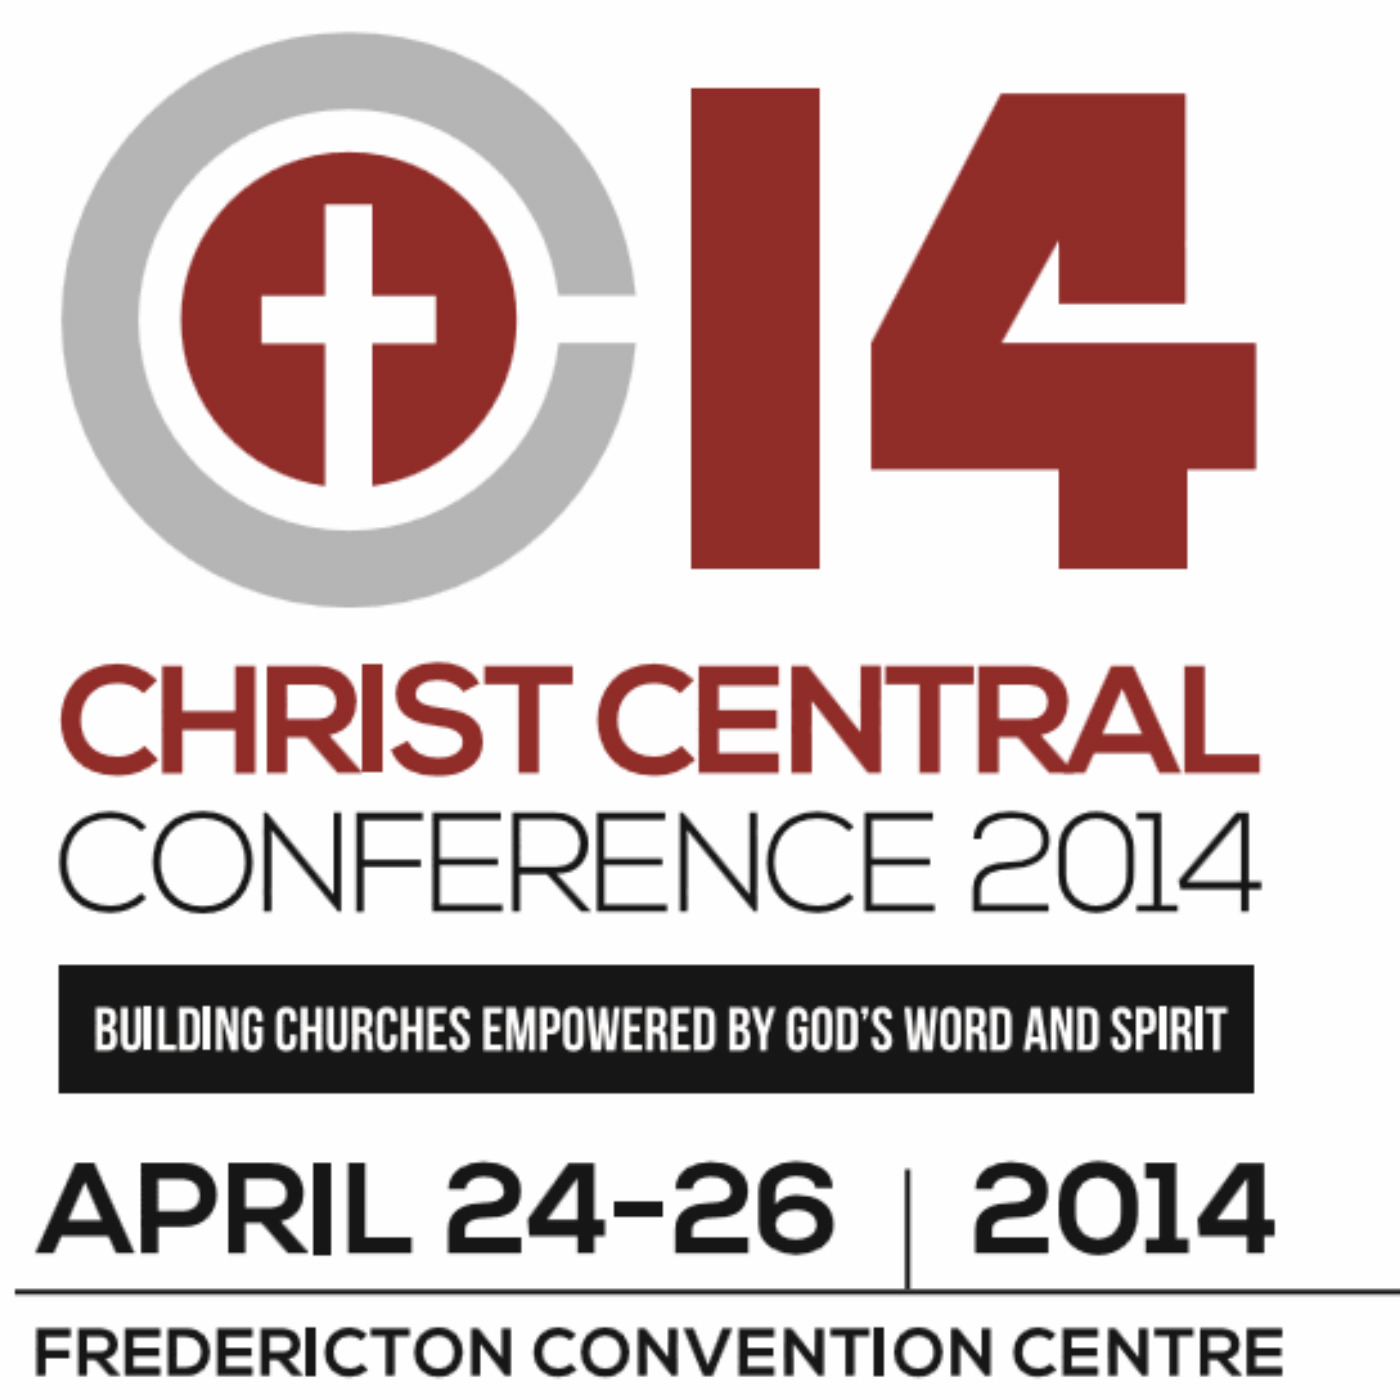 Christ Central Conference 2014